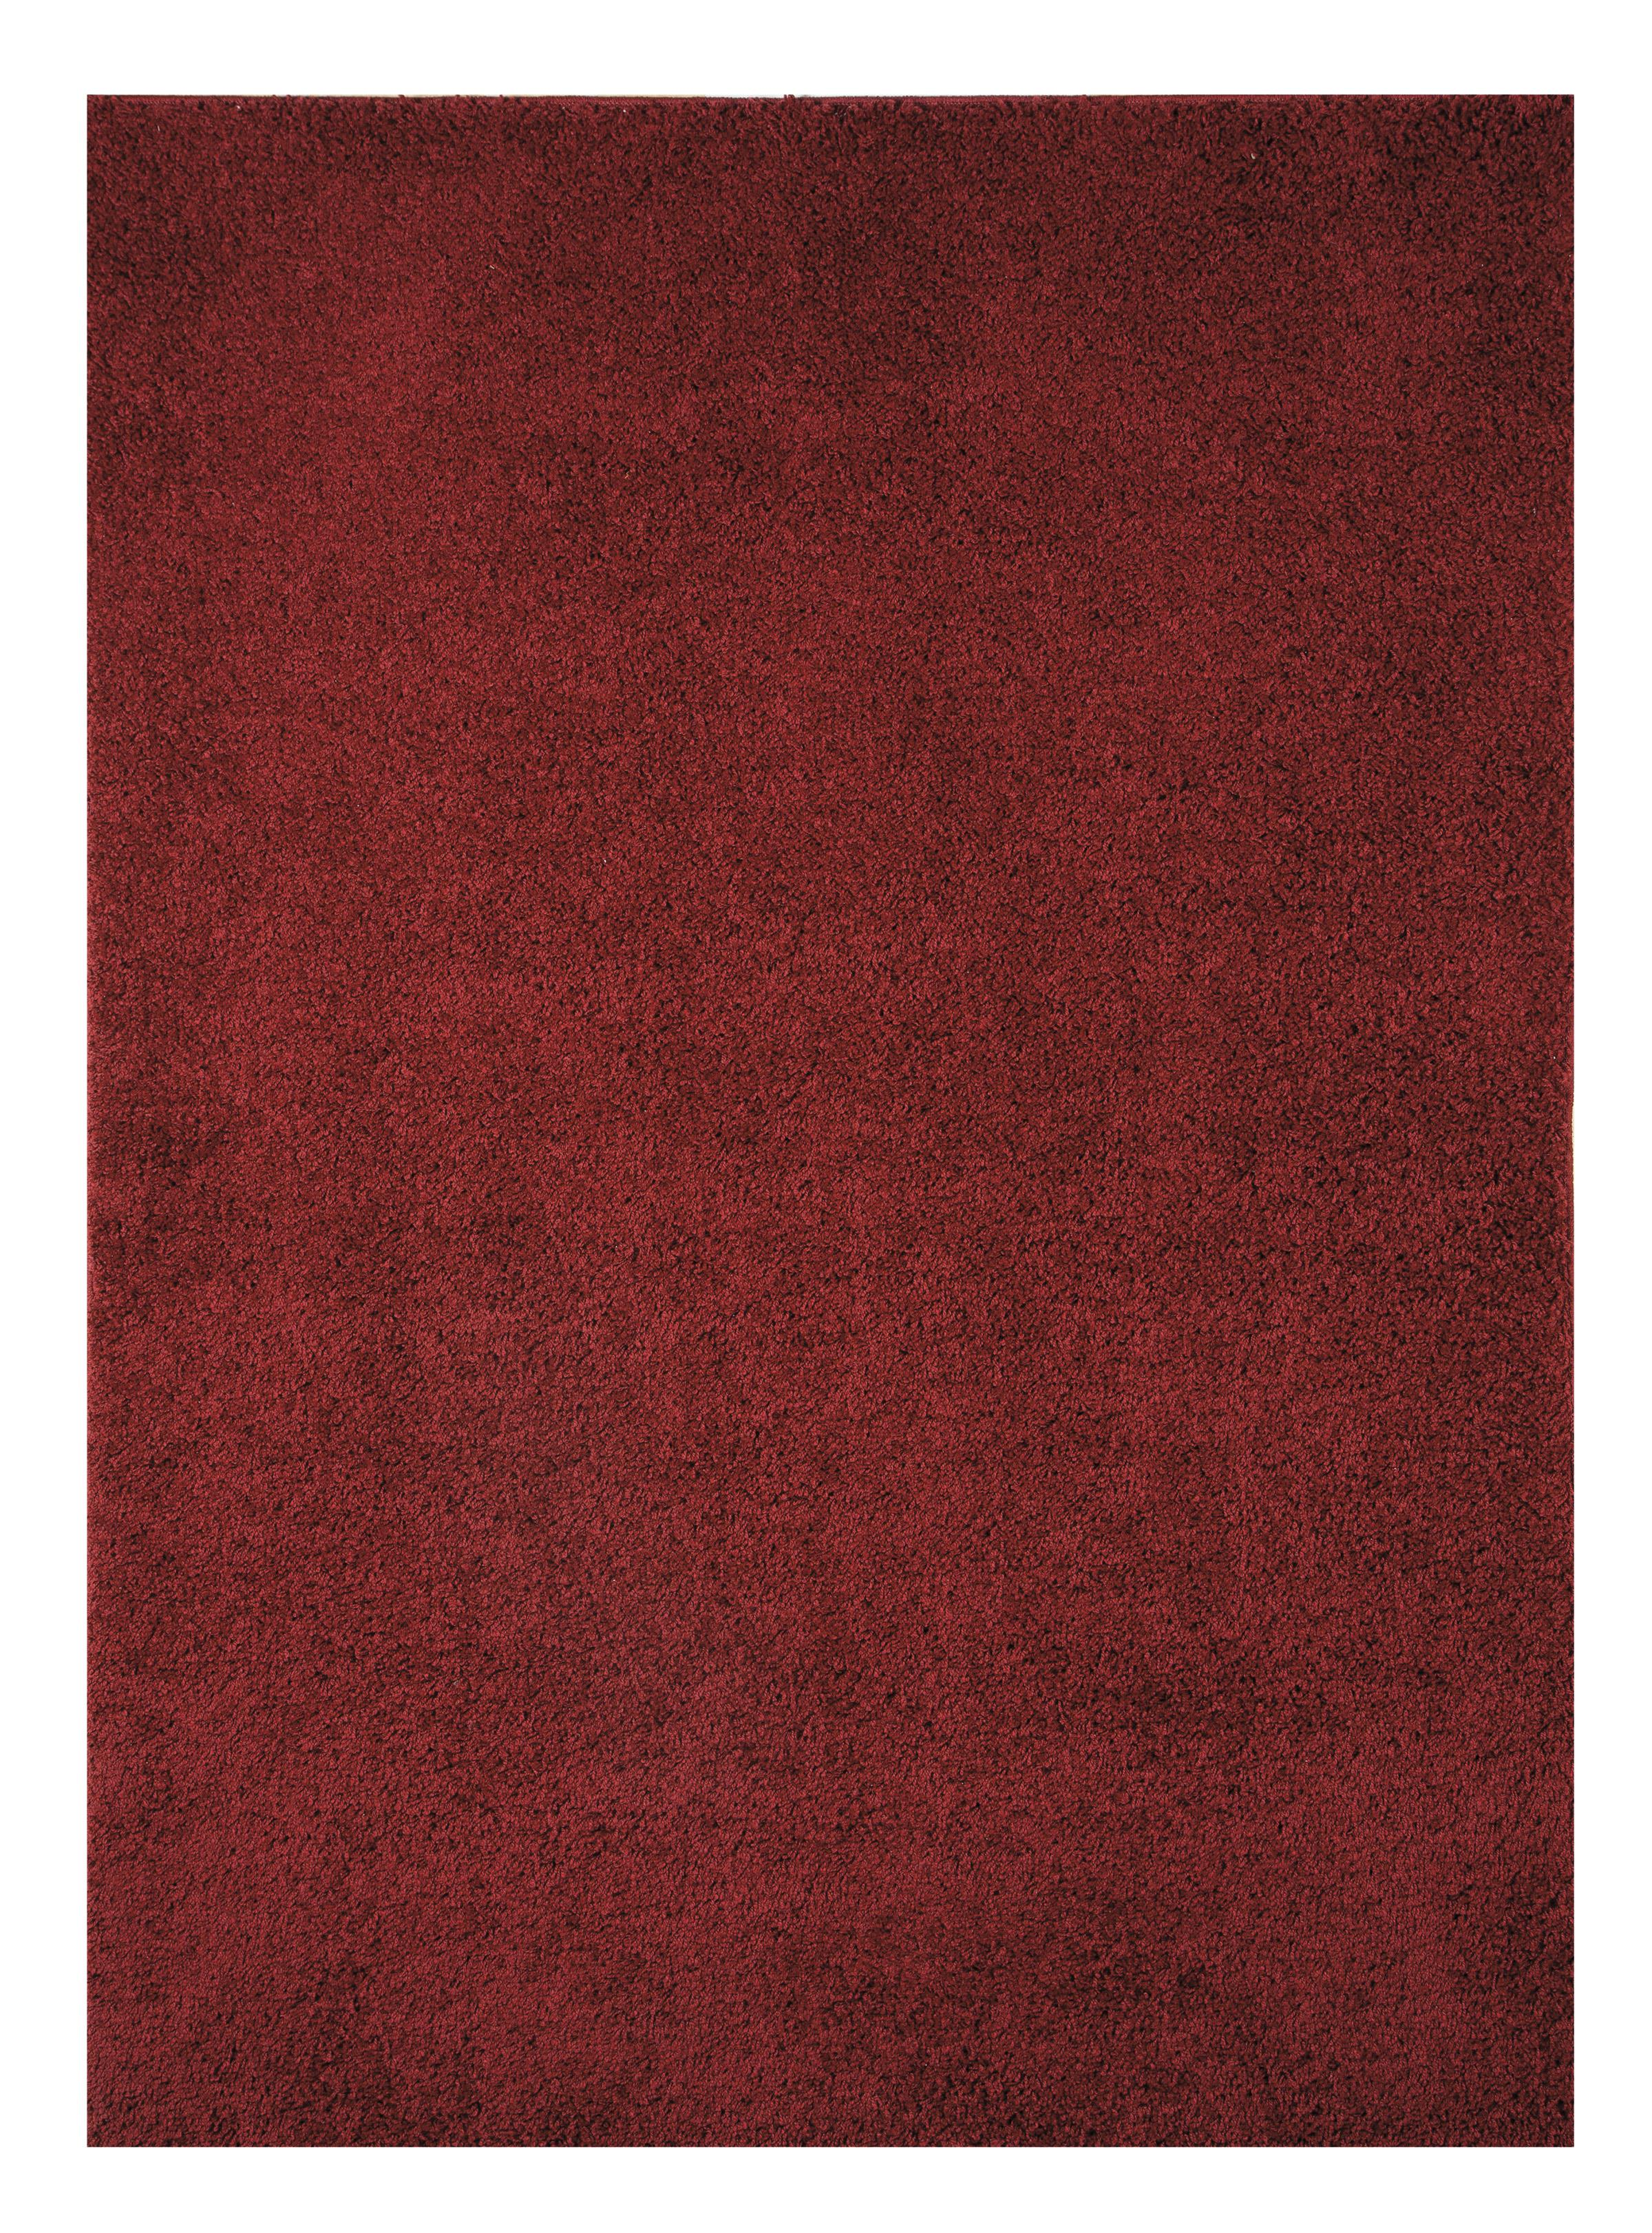 Signature Design by Ashley Contemporary Area Rugs Caci Red Medium Rug - Item Number: R309002